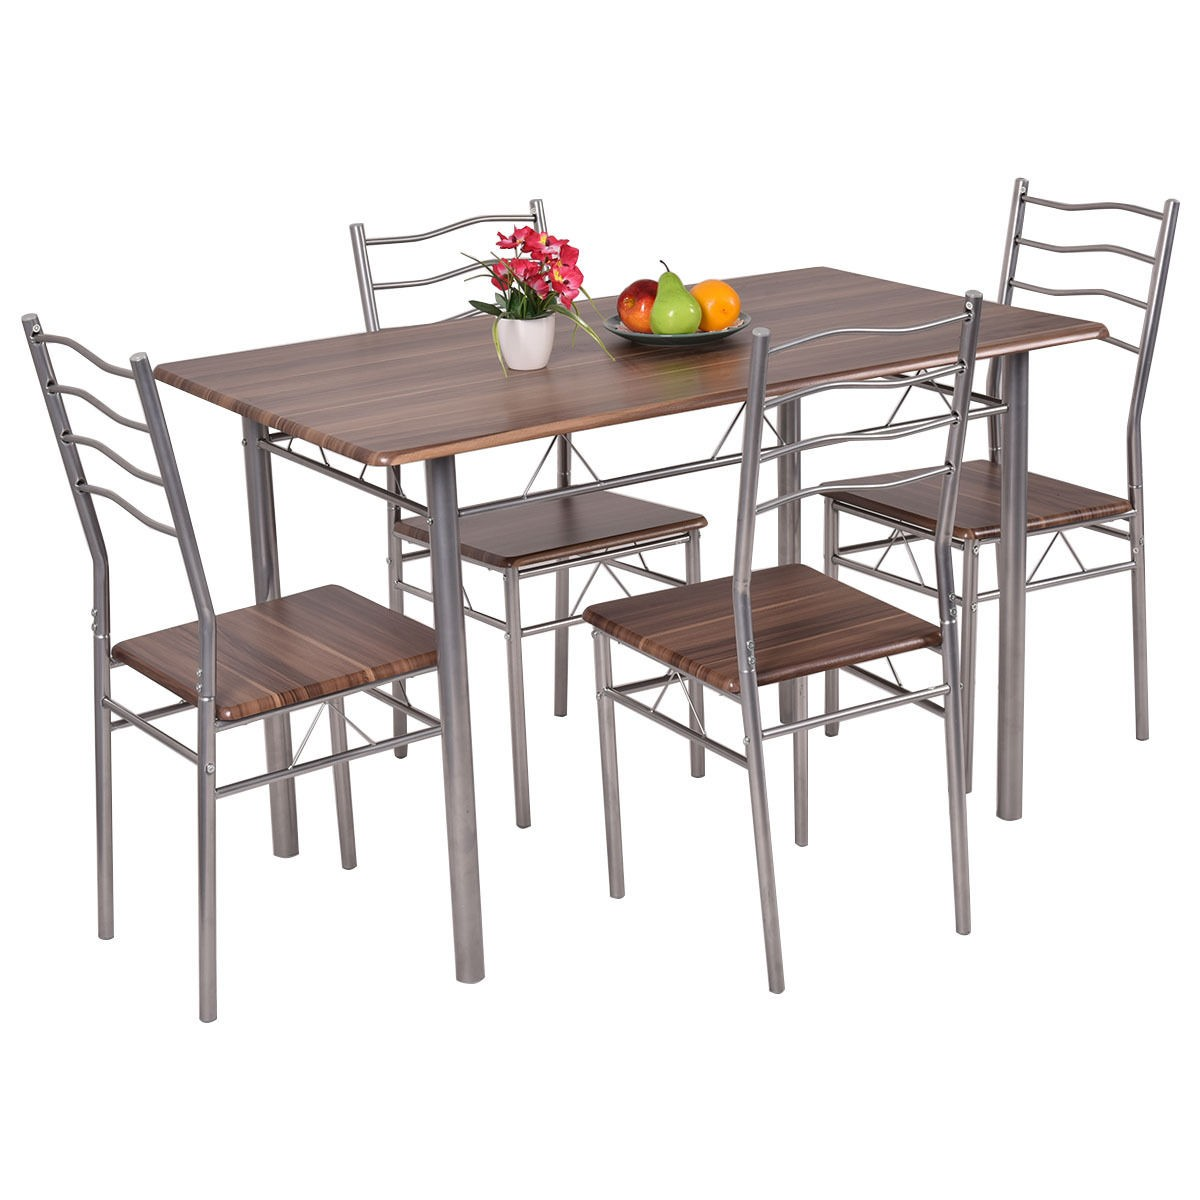 5 dining set wood metal table and 4 chairs kitchen